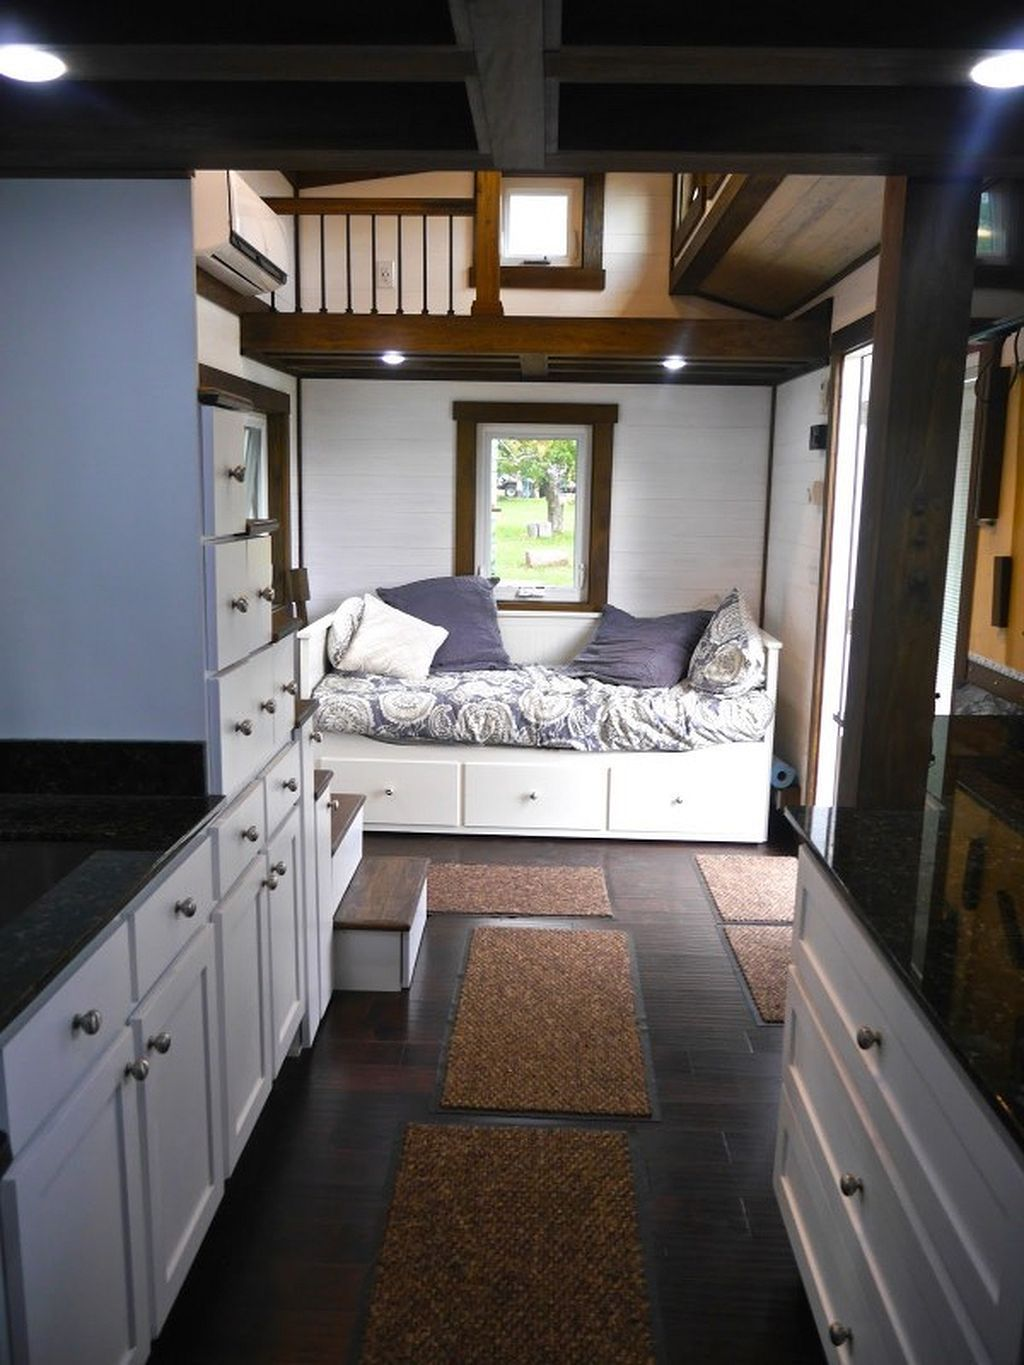 Pin by modern house on interior tiny house on wheels tiny house luxury house